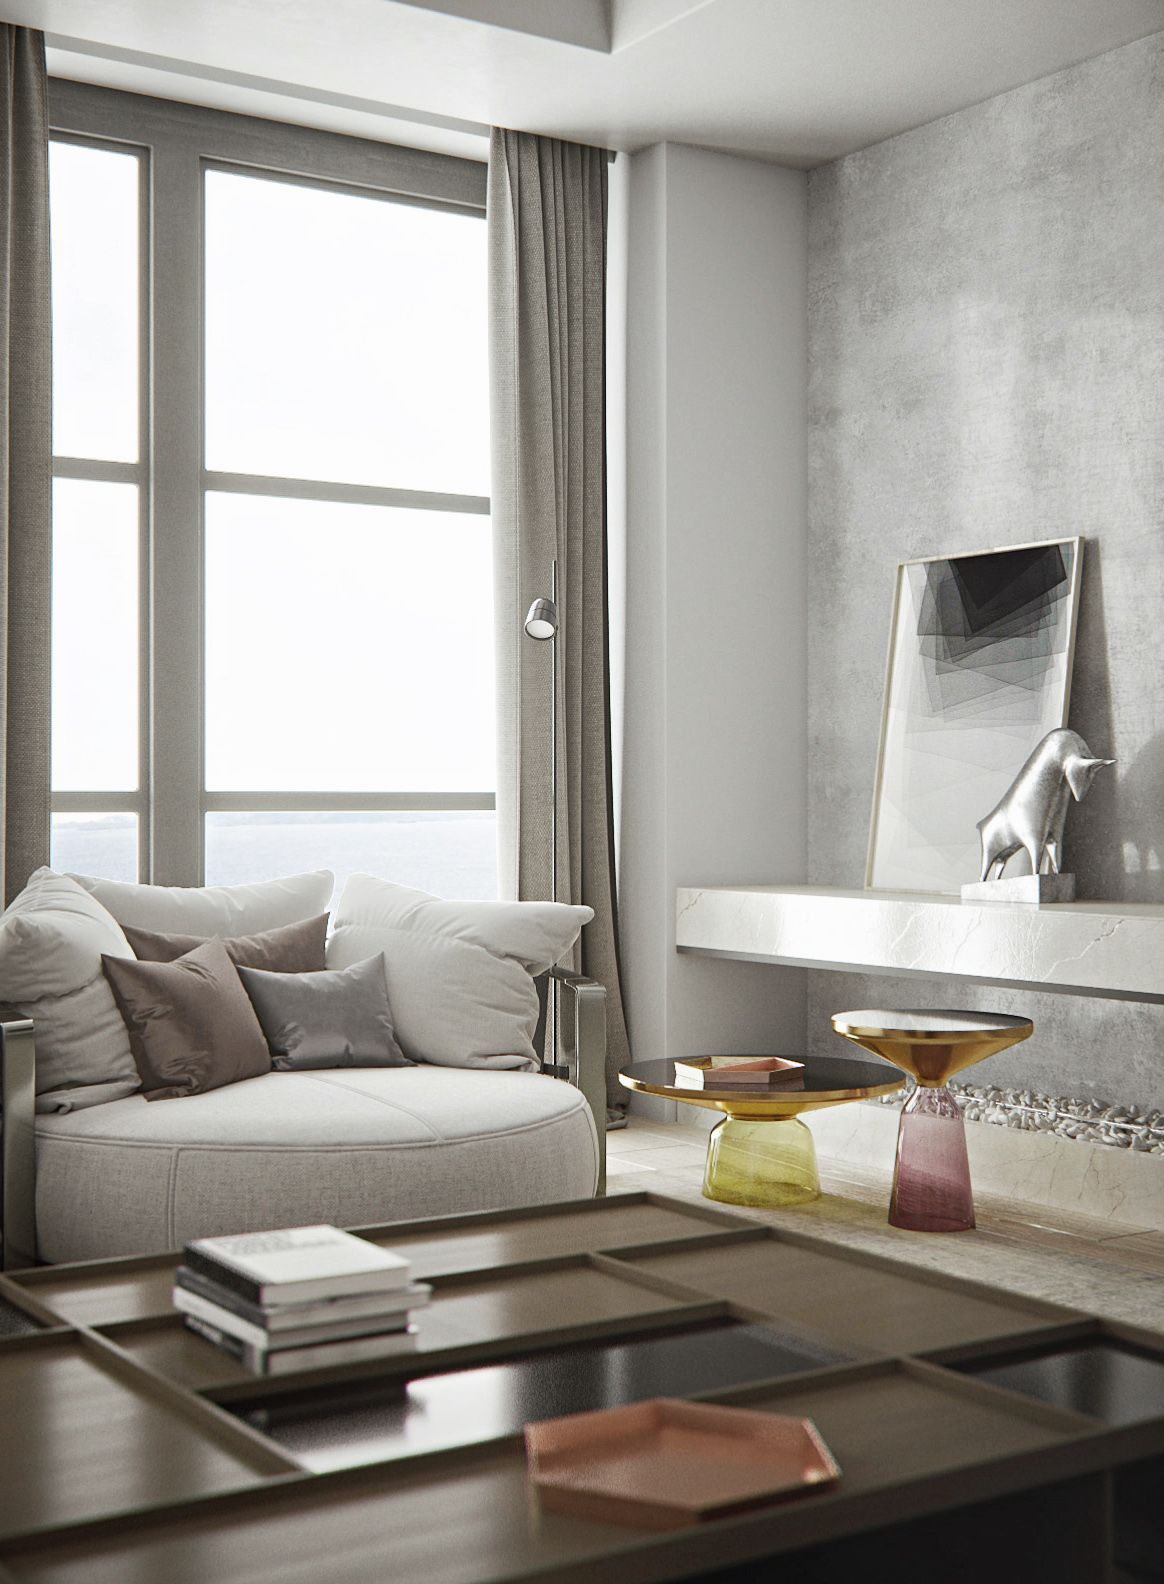 incredible useful tips contemporary minimalist interior bathroom sinks kitchen cupboards spaces home decorating color also rh pinterest